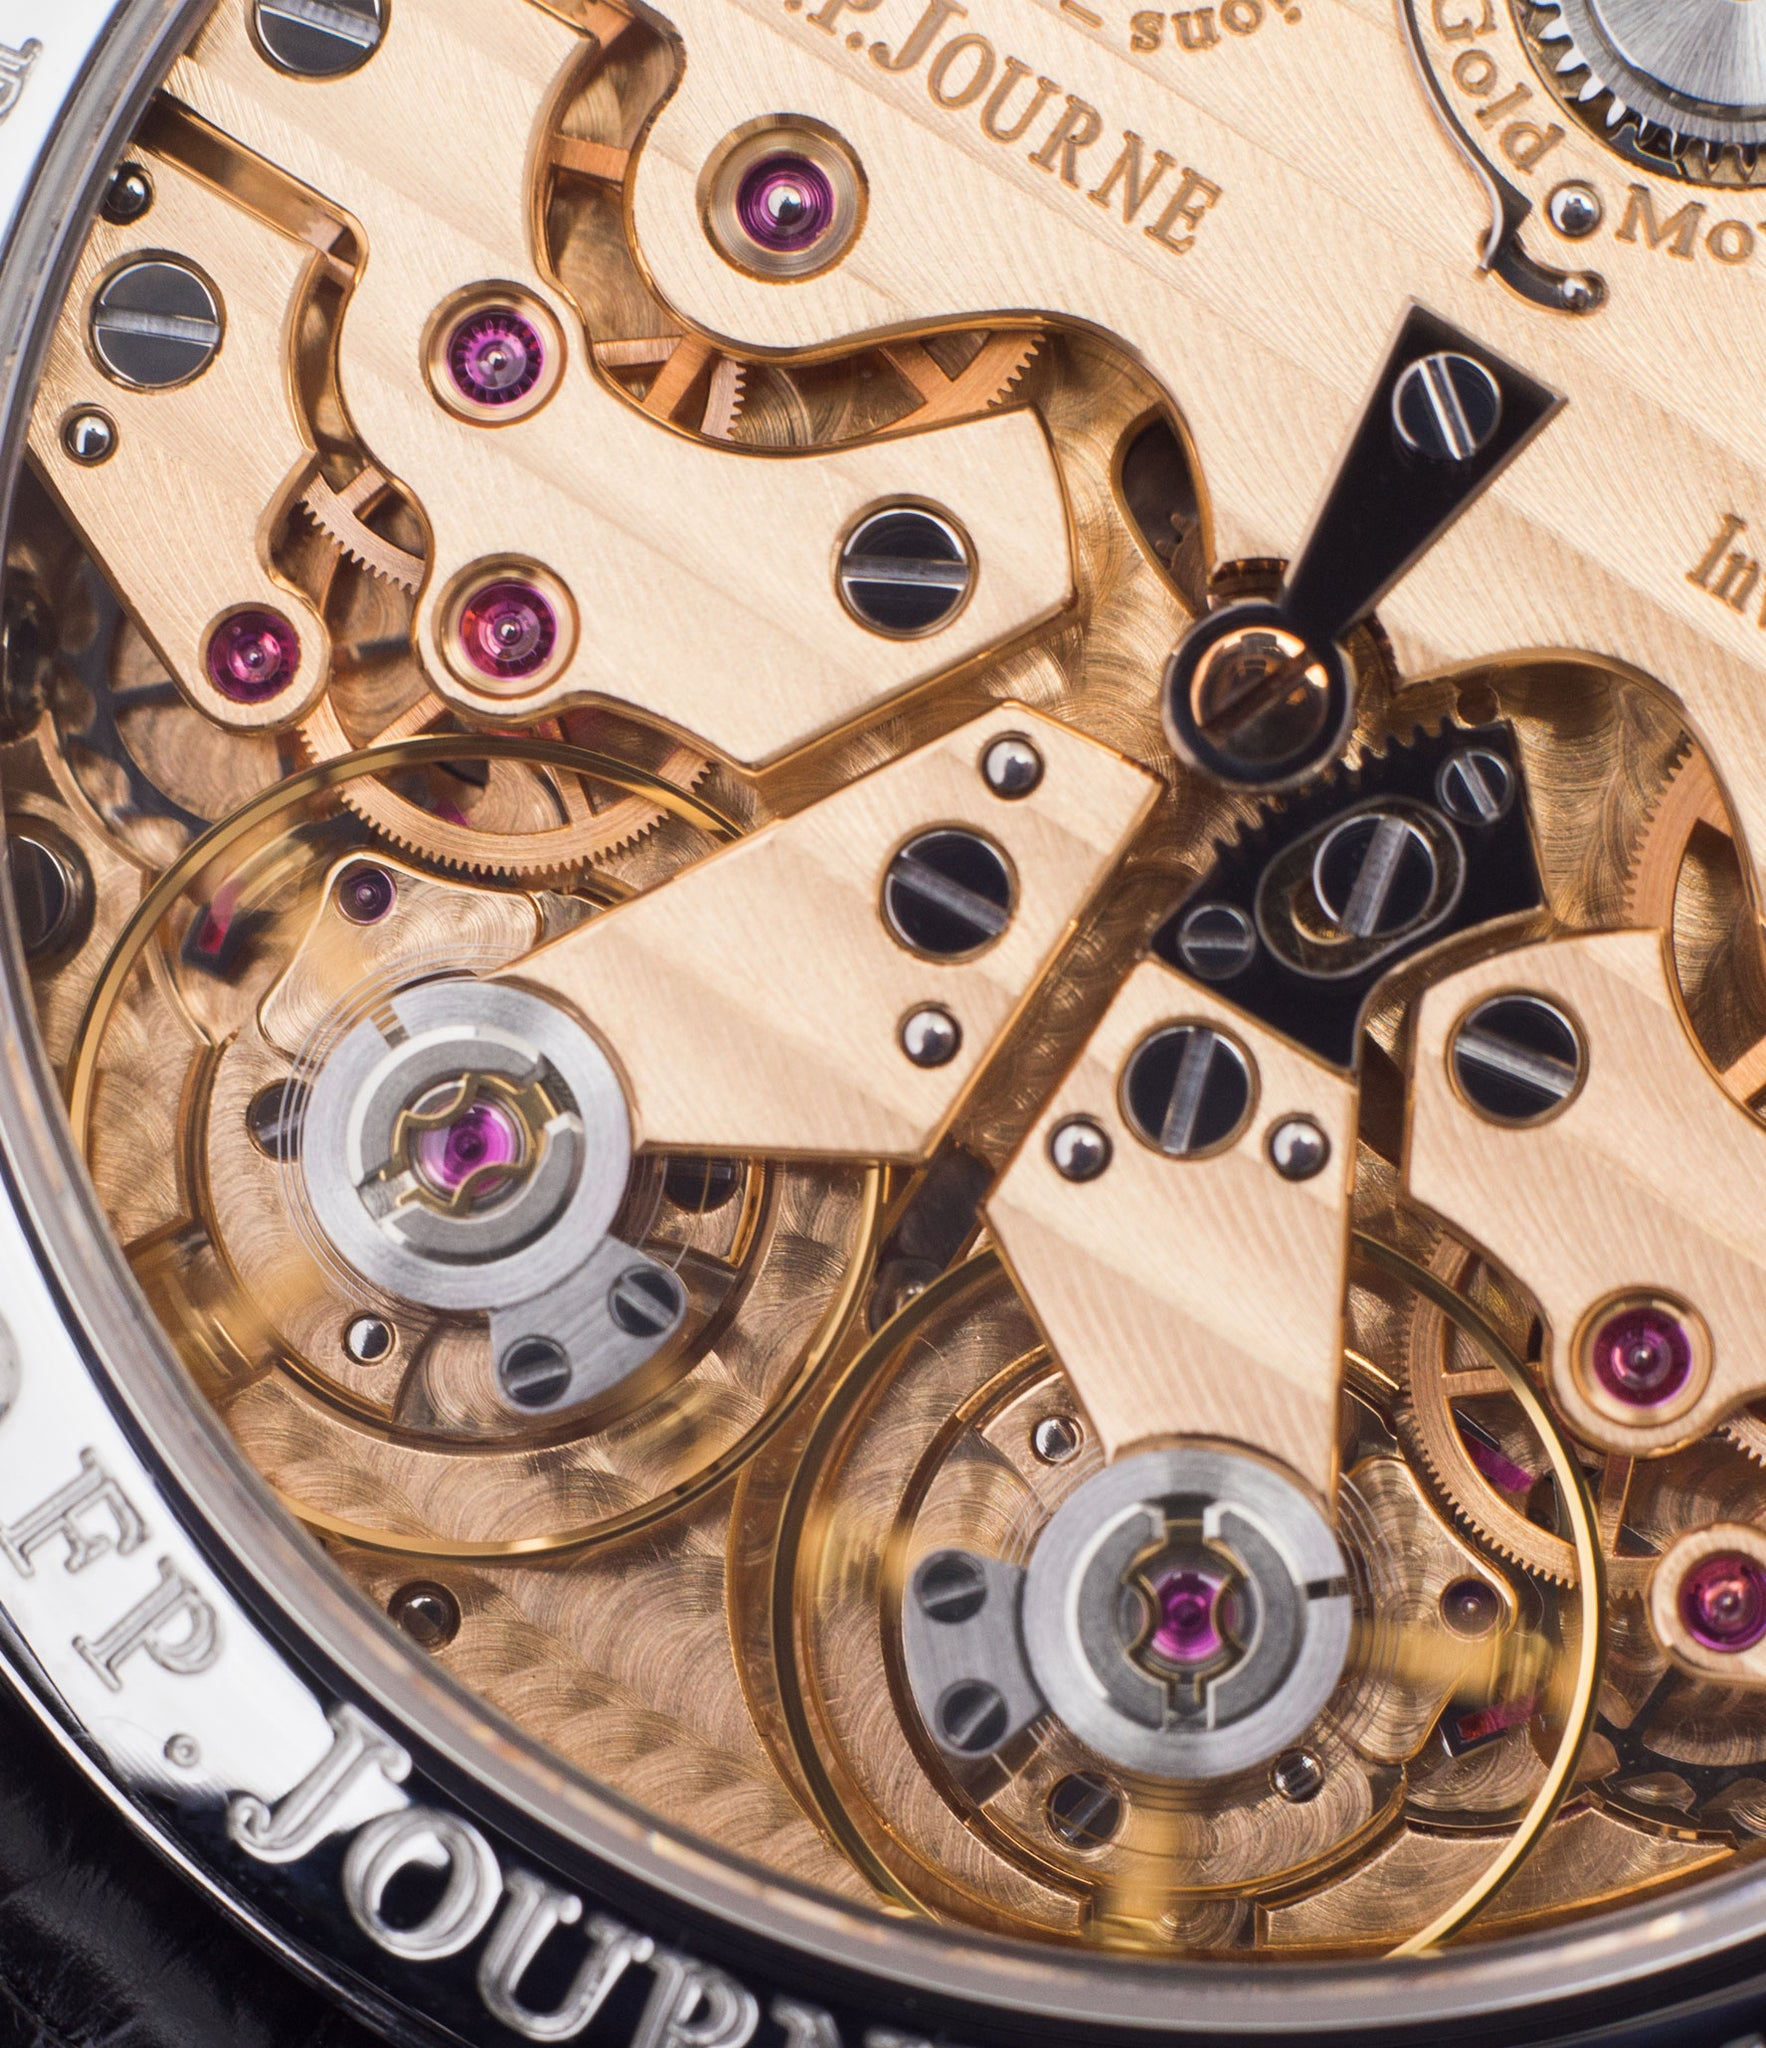 Rose gold F.P. Journe Resonance movement from the steel set